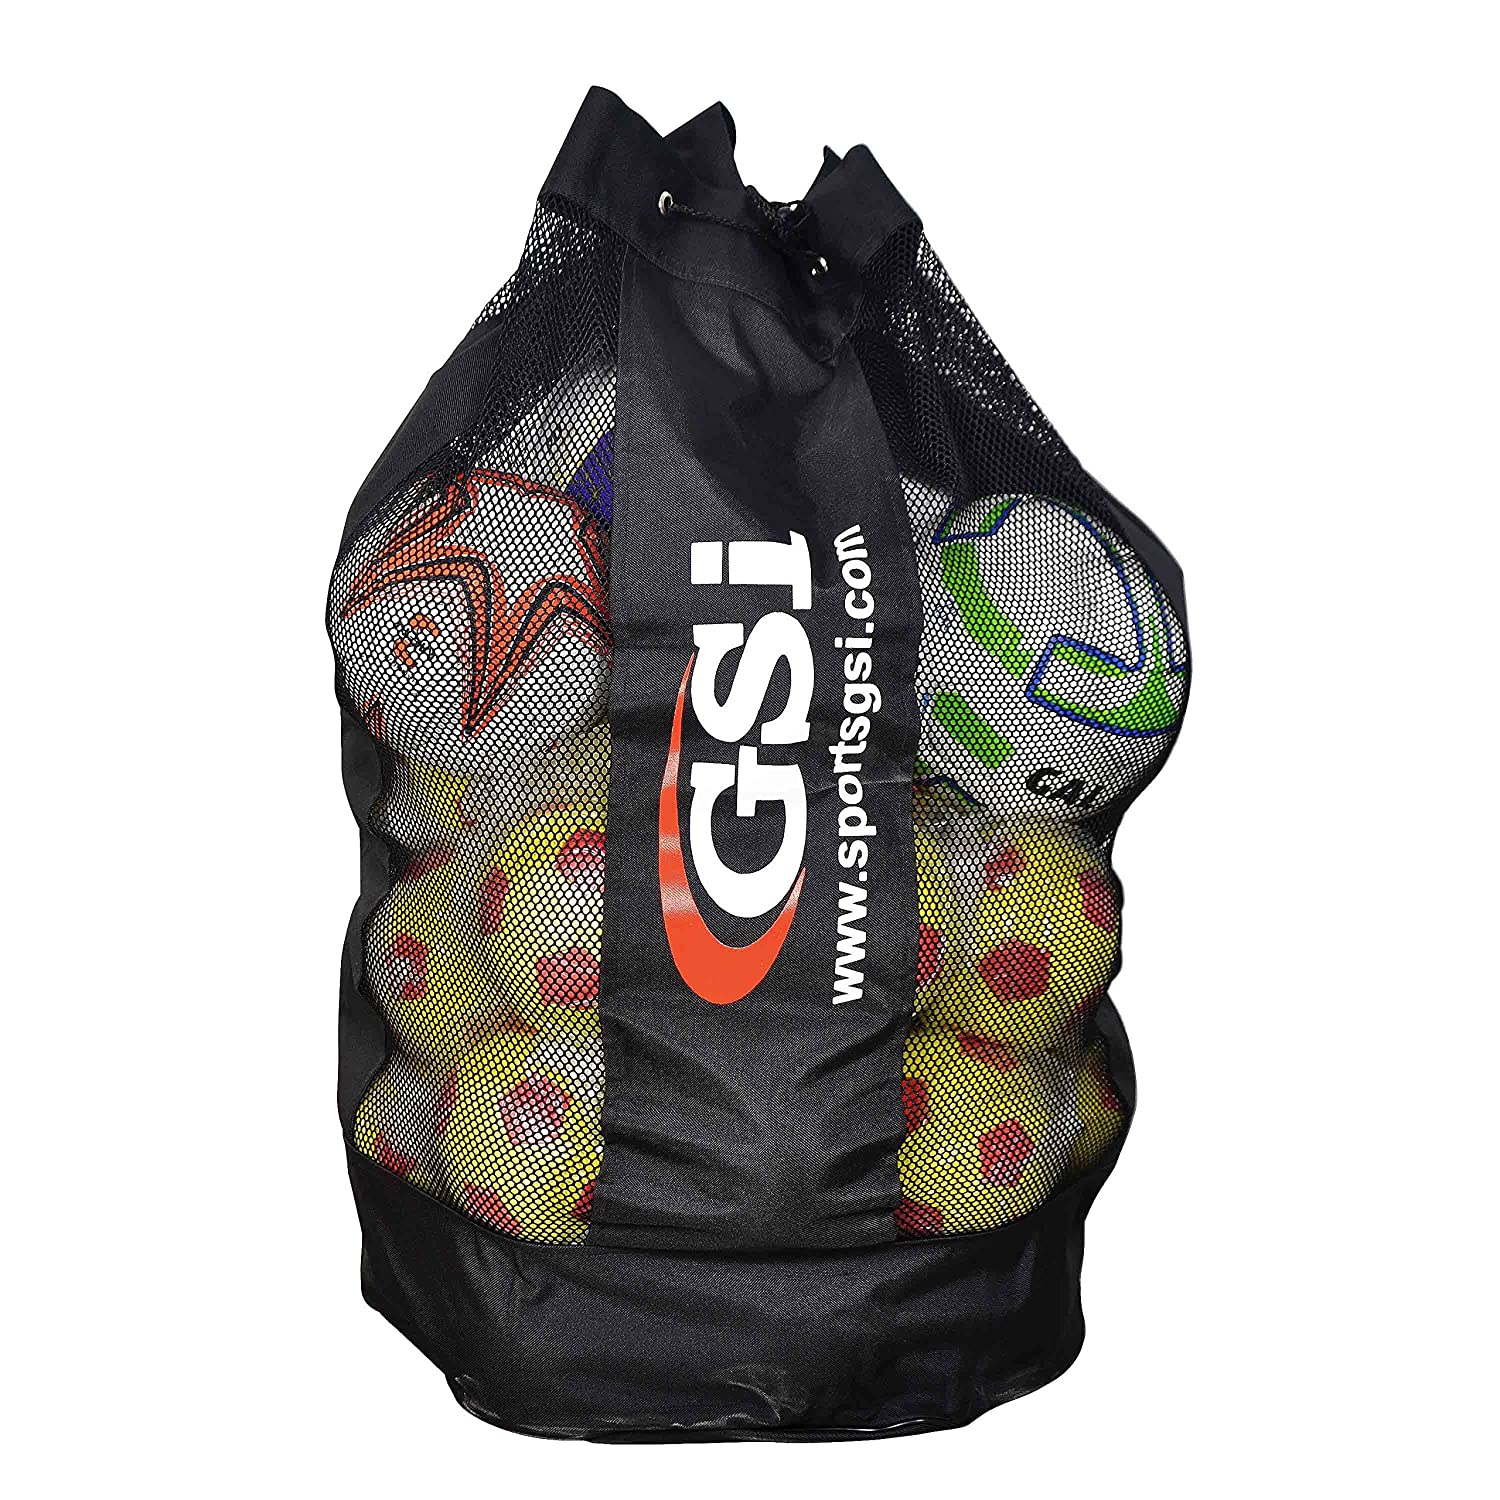 GSI Foldable Mesh Ball Storage Bag with Carrying Strap, Drawstring Closure, Alternate mesh Panels for Football, Basketball, Volleyball, Handball and Other Inflatable Balls (18 Balls)